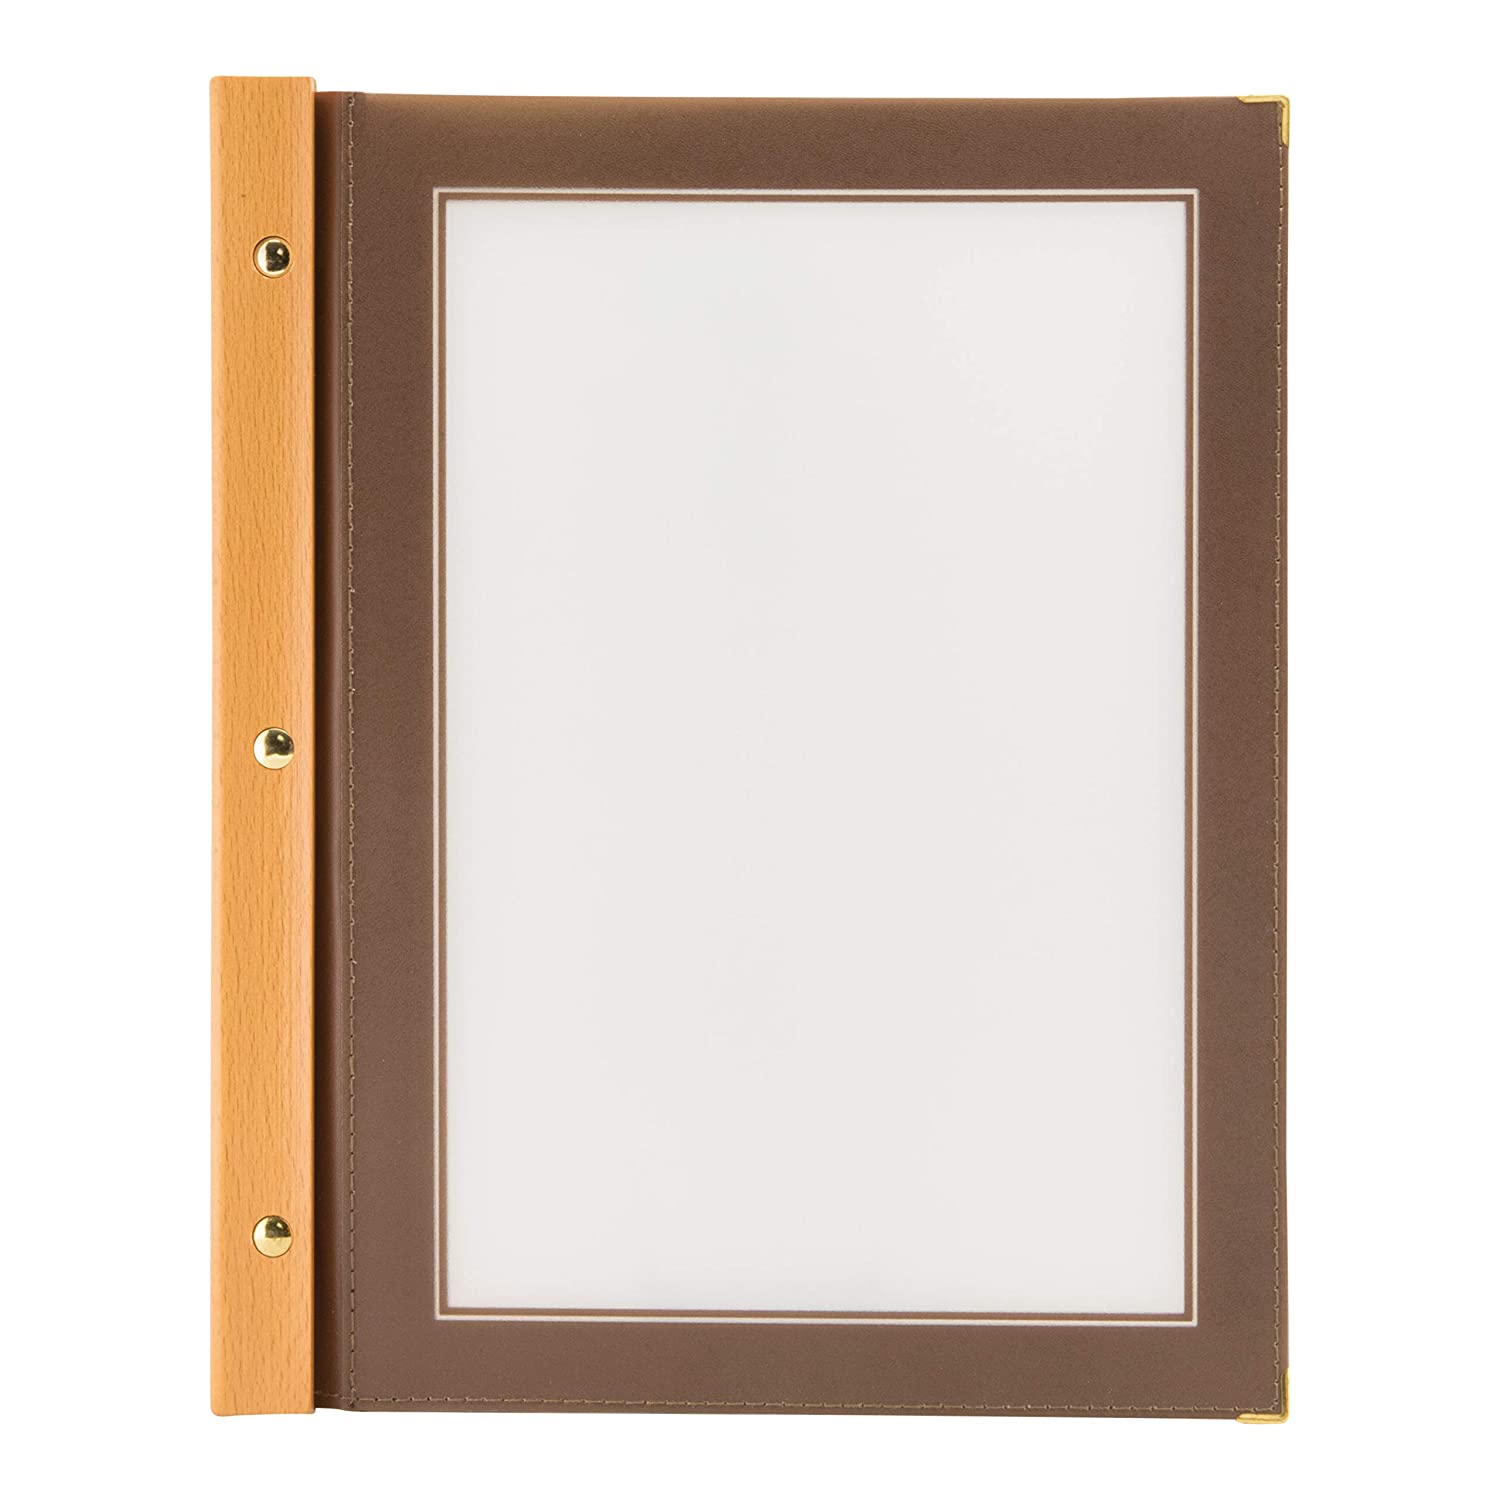 Securit Set da 5 inserti A5 Beige per la linea Wood porta Menu in legno